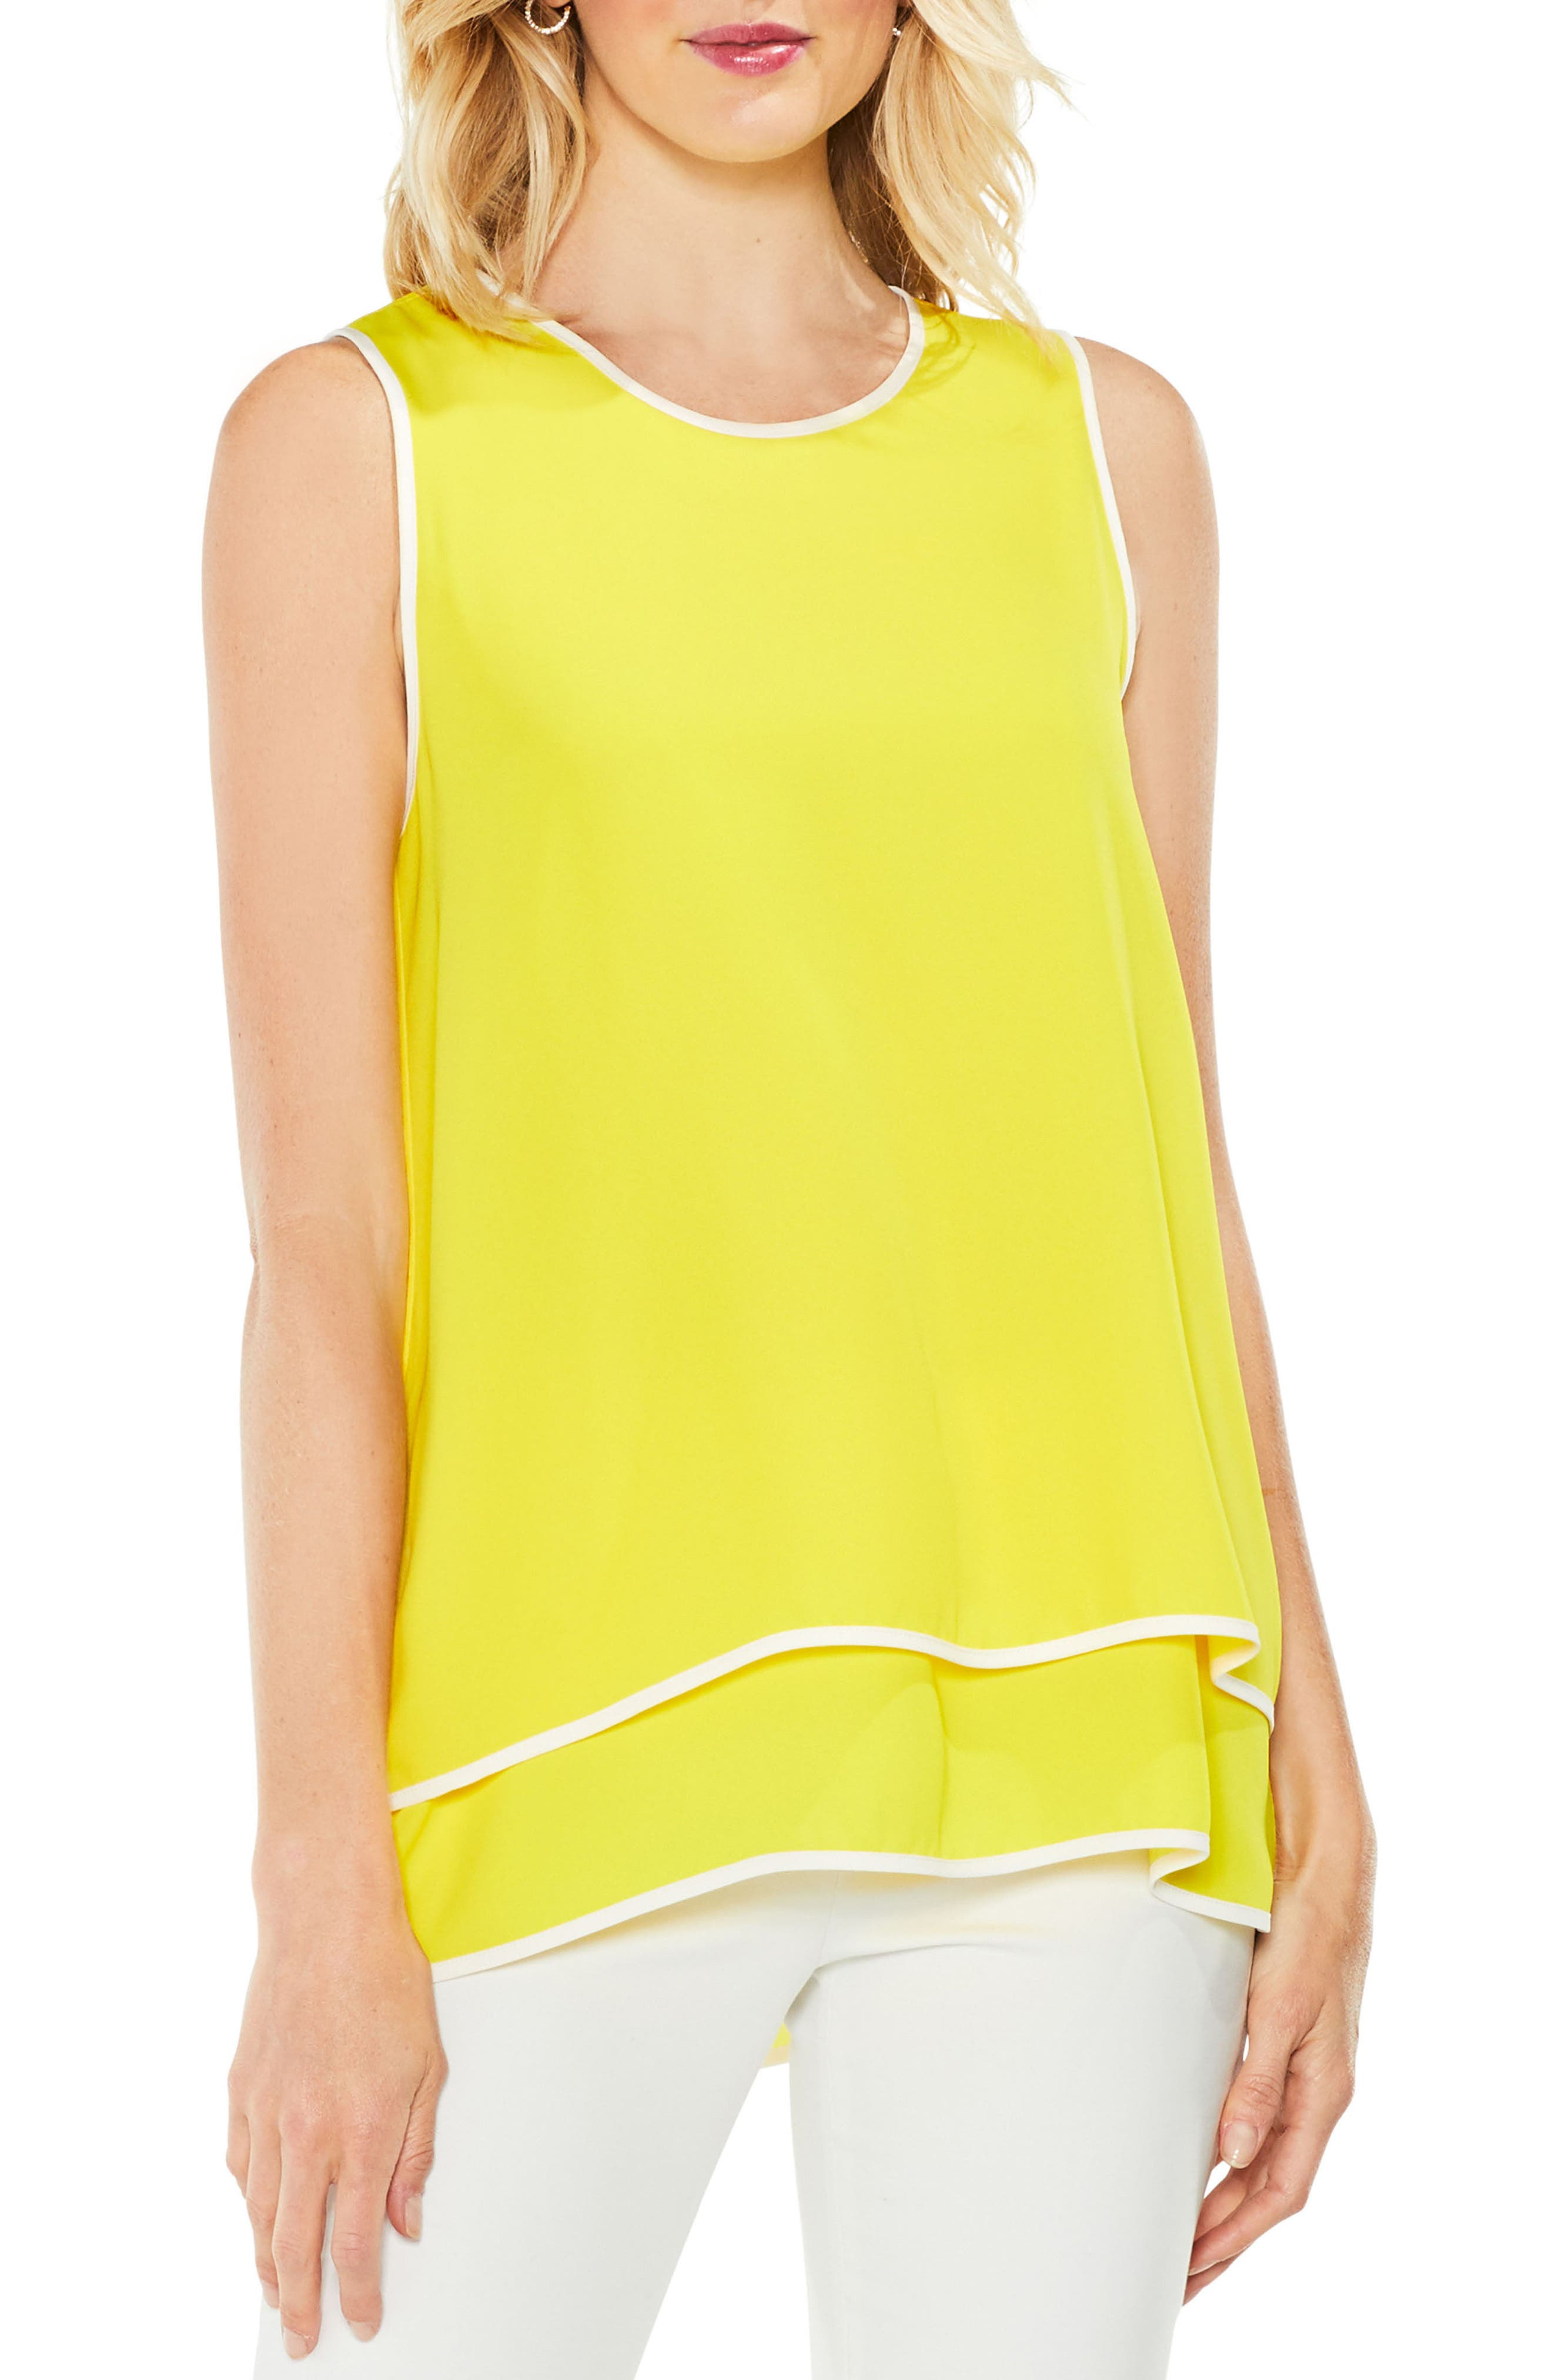 Alternate Image 1 Selected - Vince Camuto Double-Layer Colorblock Top